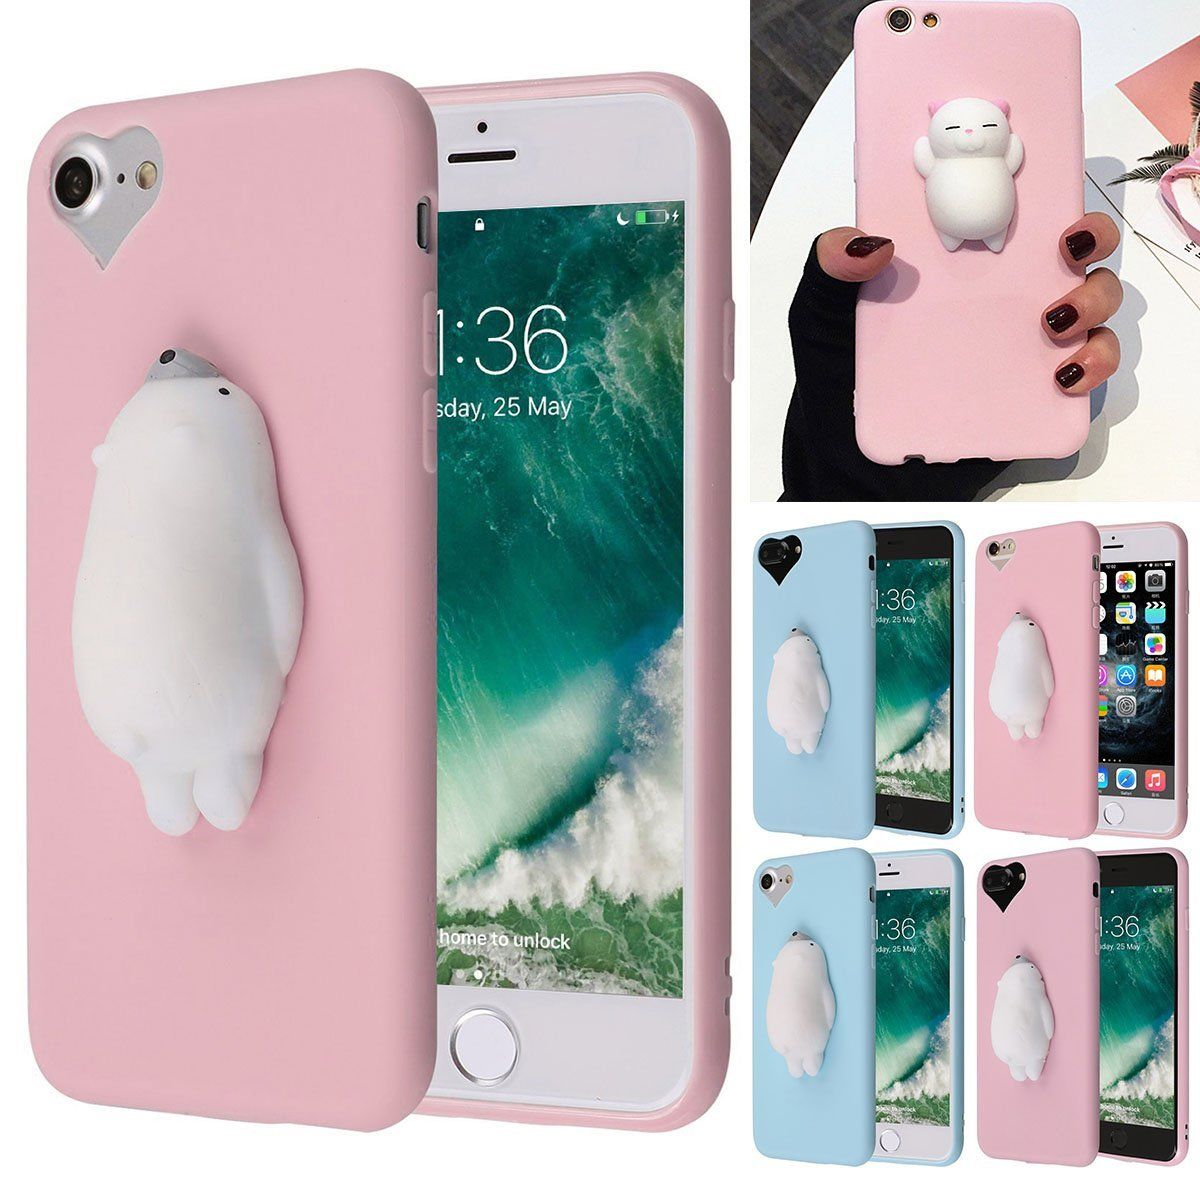 d7a007c1f1 Squishy 3D Soft Silicone Cat Kneading Phone Case Cover For Iphone 6 6S 7  Plus